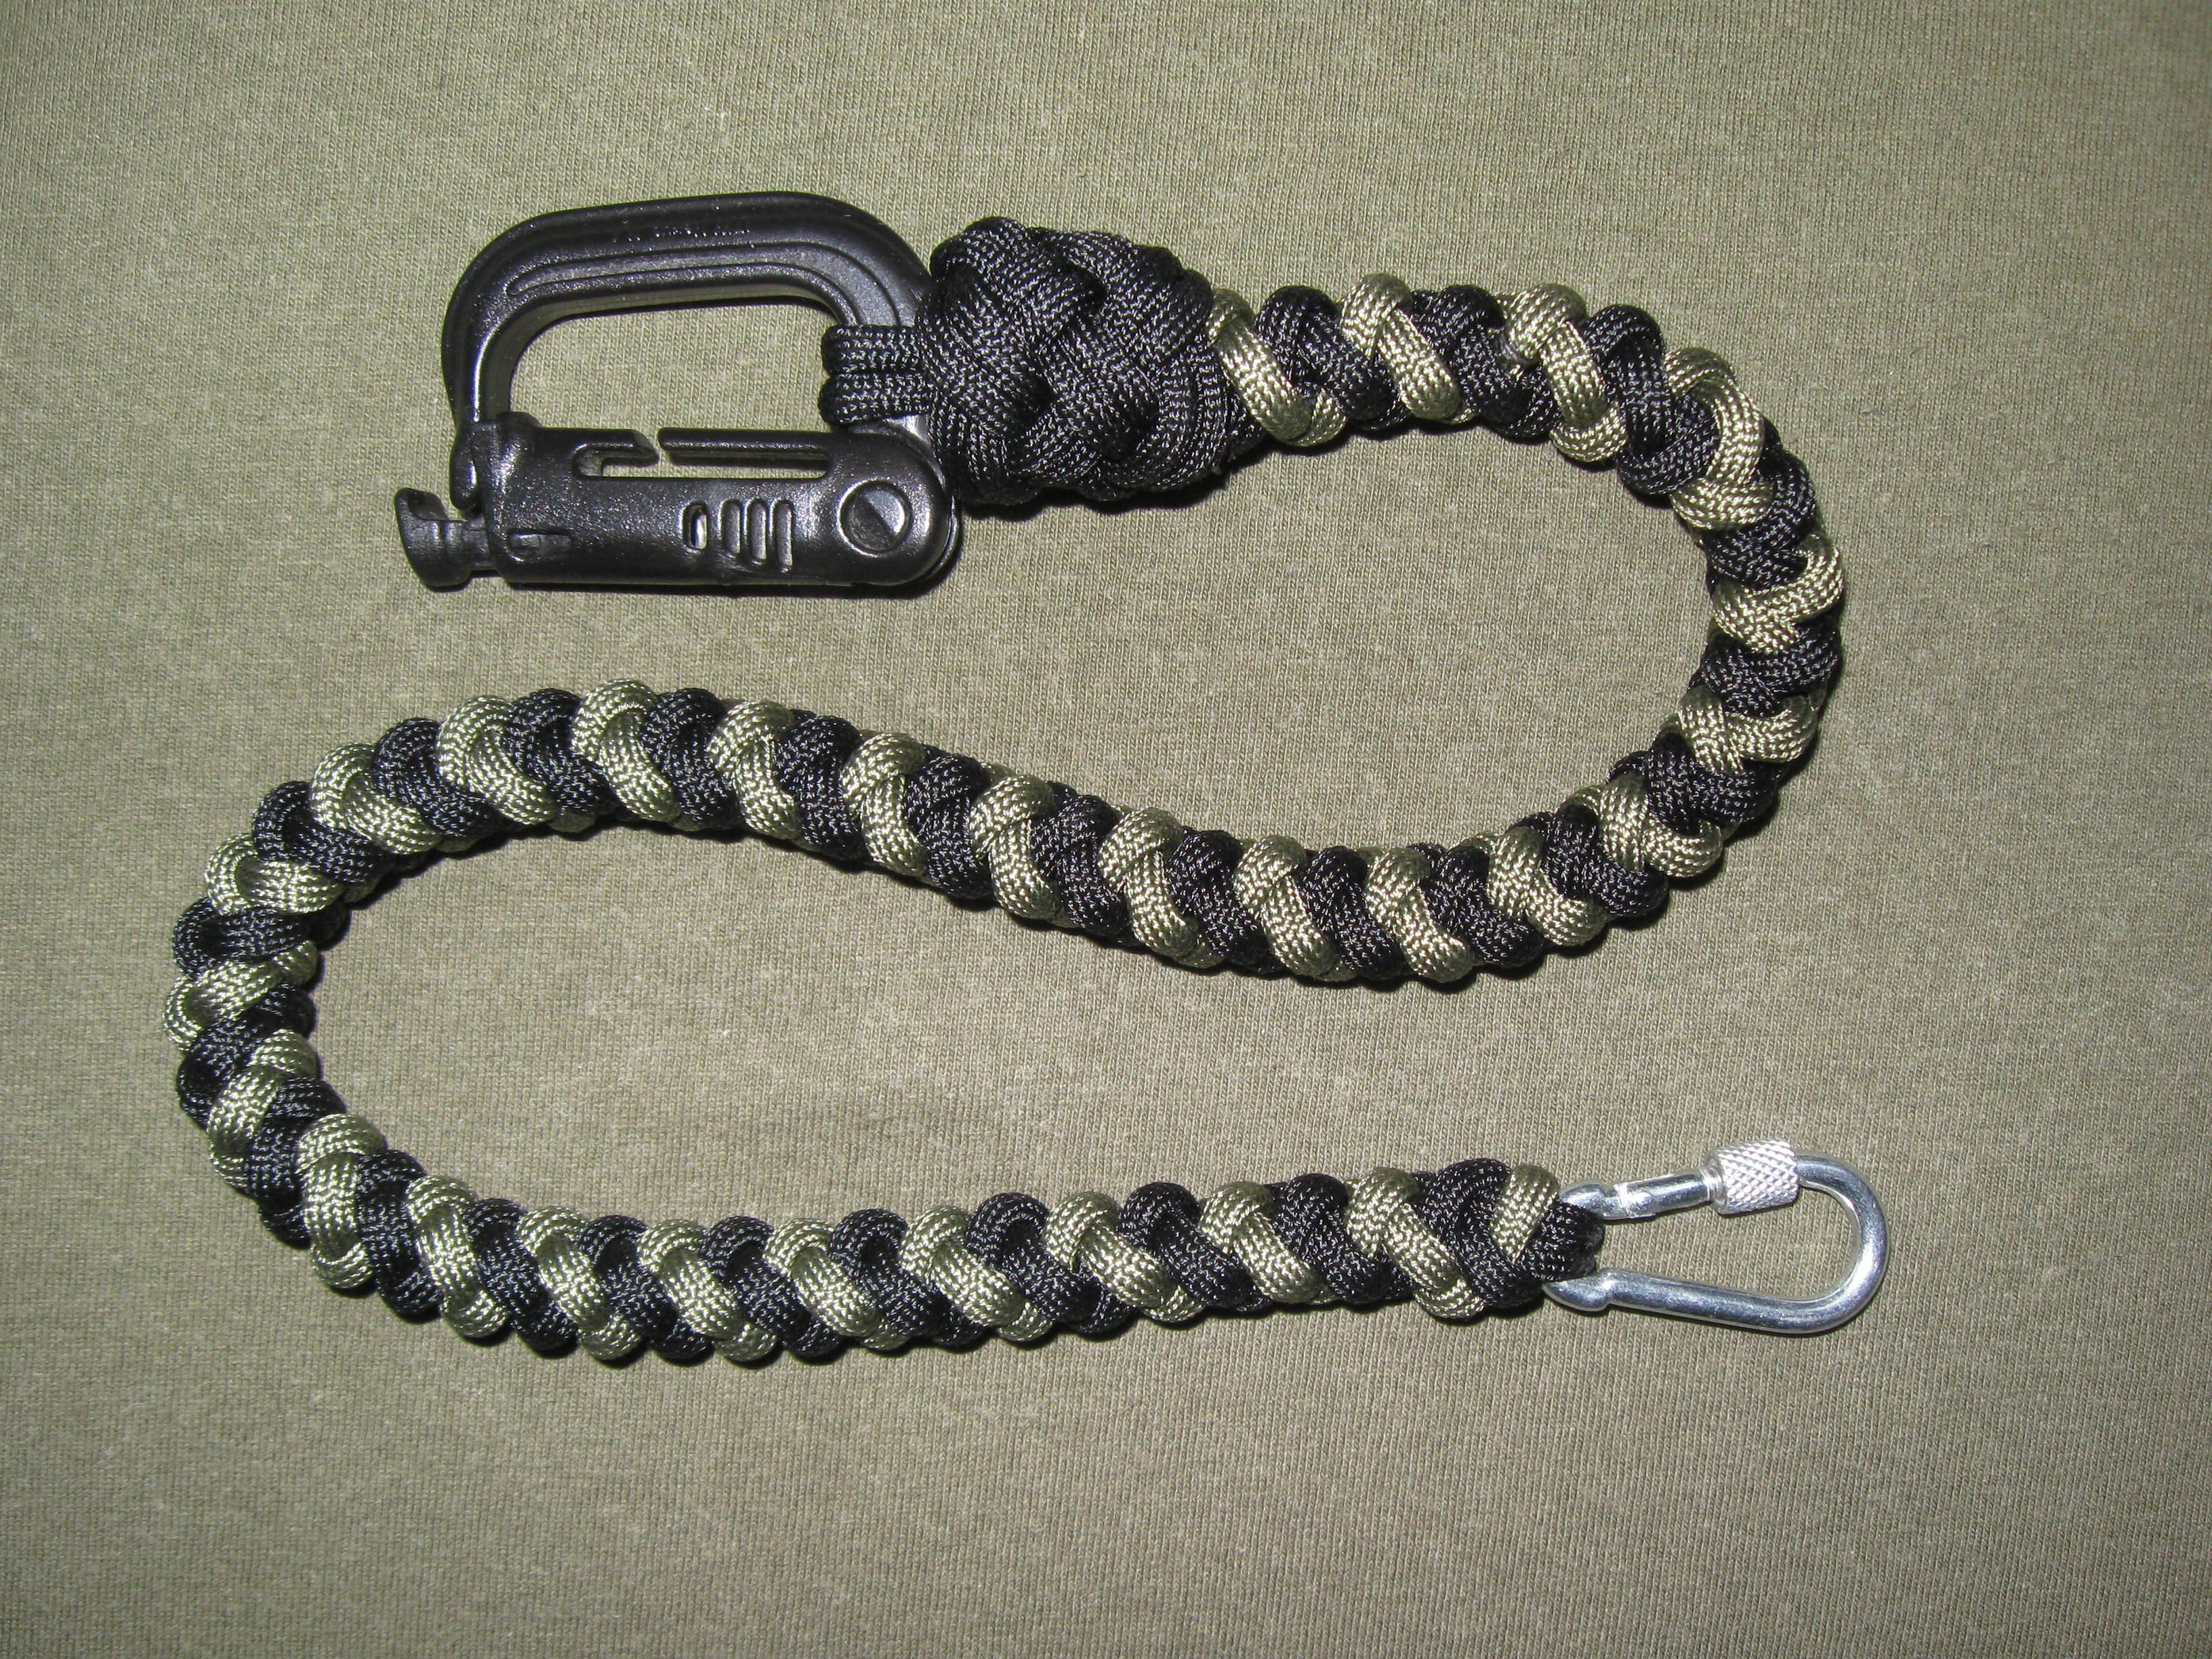 4 strand spiral round braid wallet chain with grimlock for How to make a paracord wallet chain